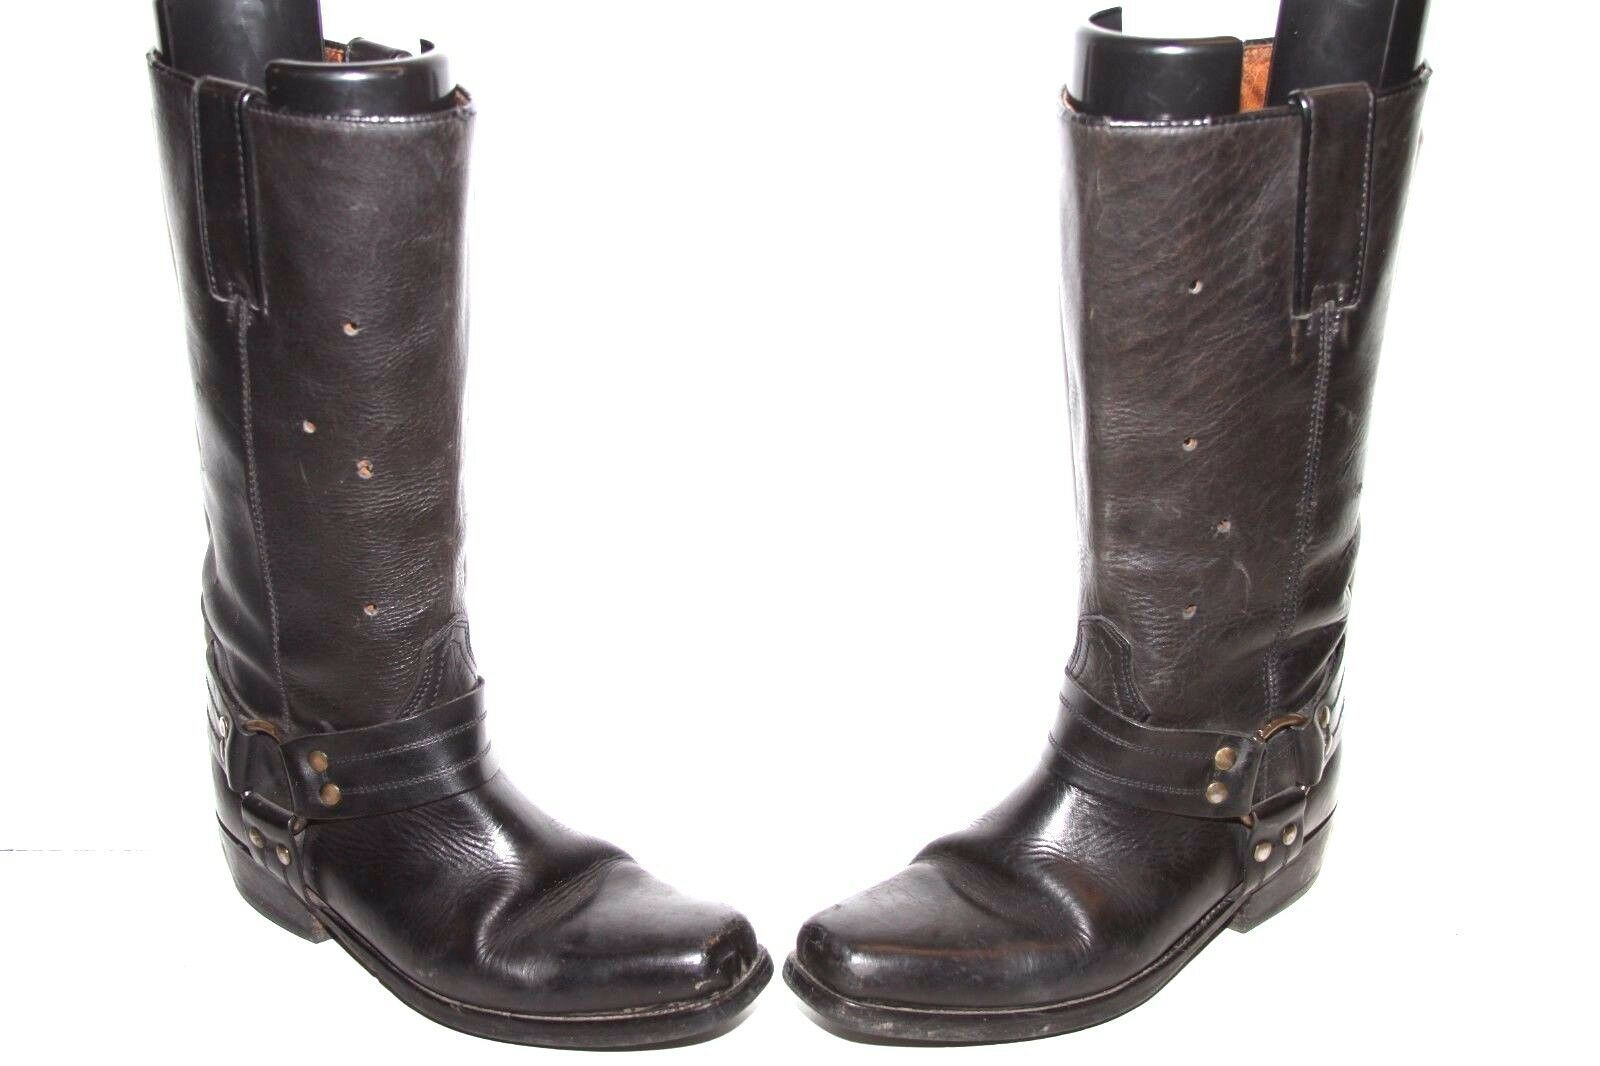 Domini Black Harness Chopper Western Boots Made in Italy Womens 10 Preowned